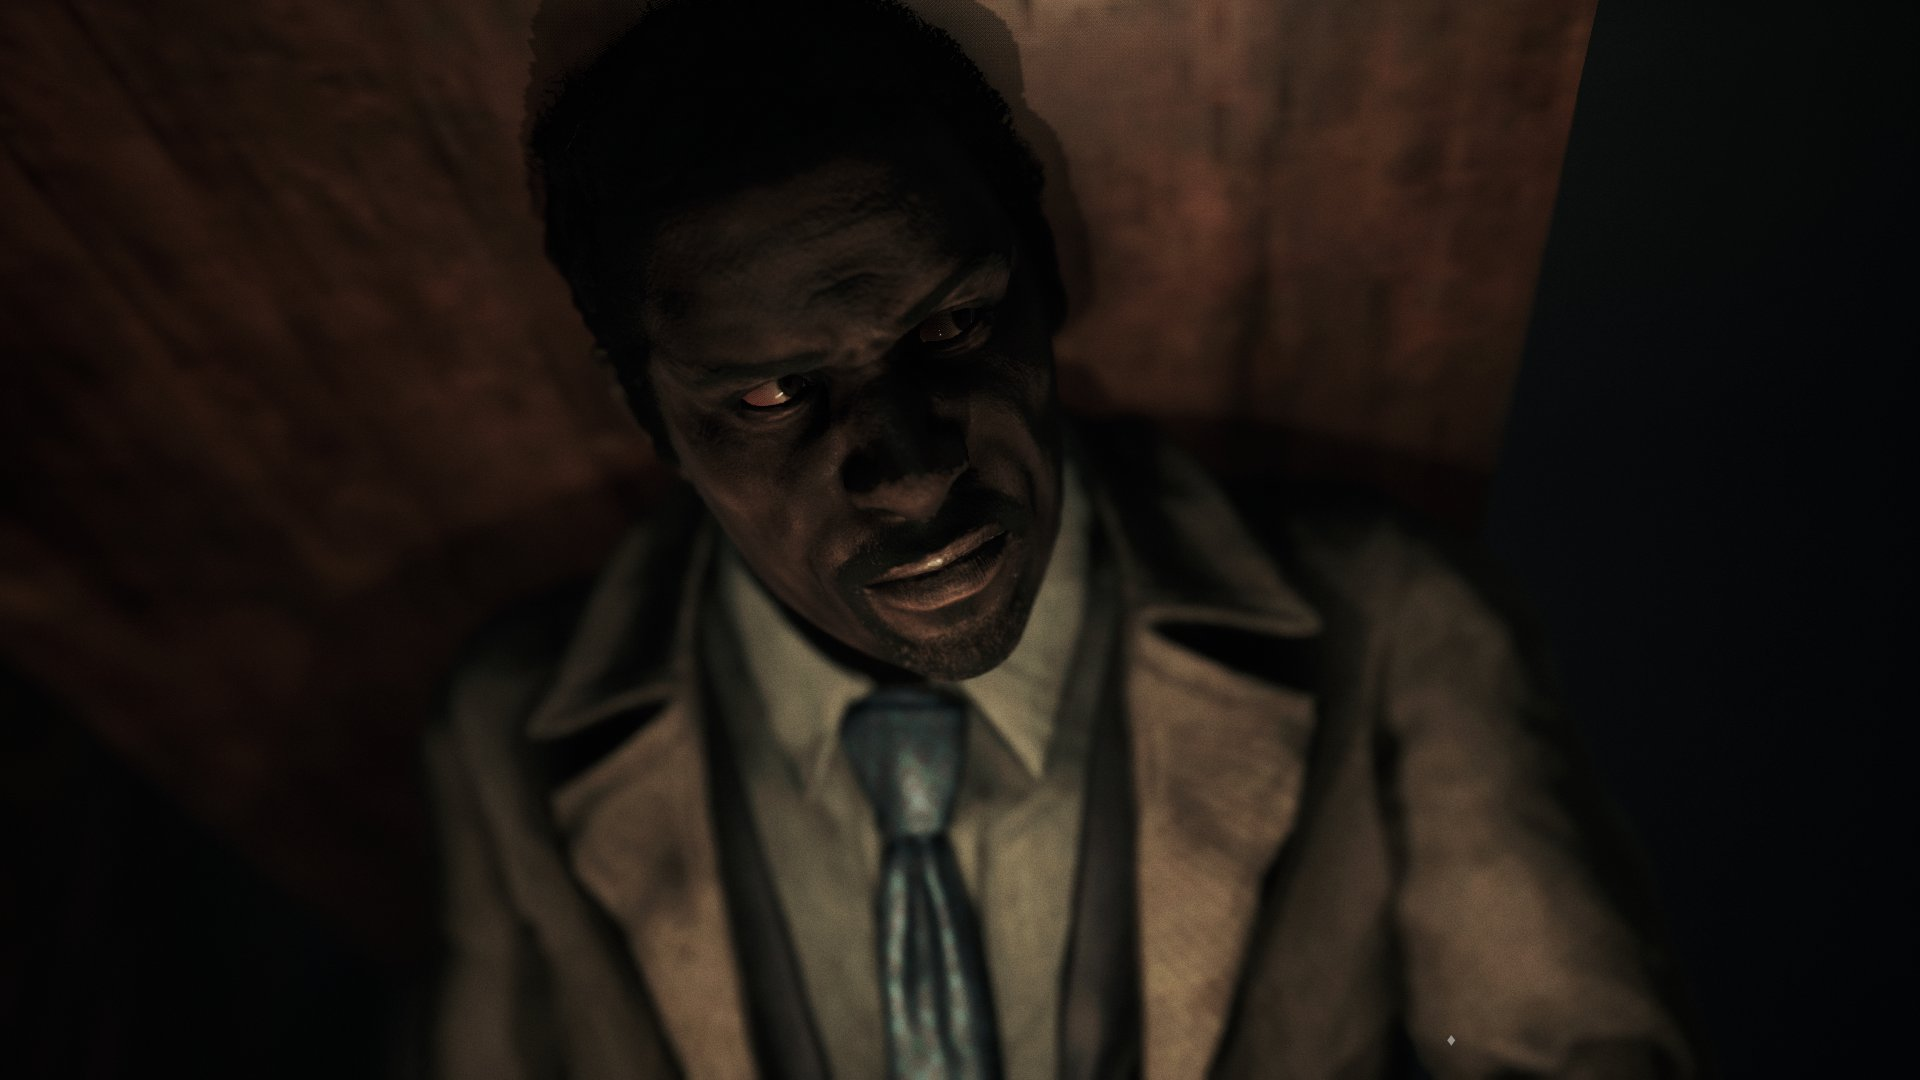 A screenshot from Song of Horror, a man stood with his back to a wooden door, listening intently.